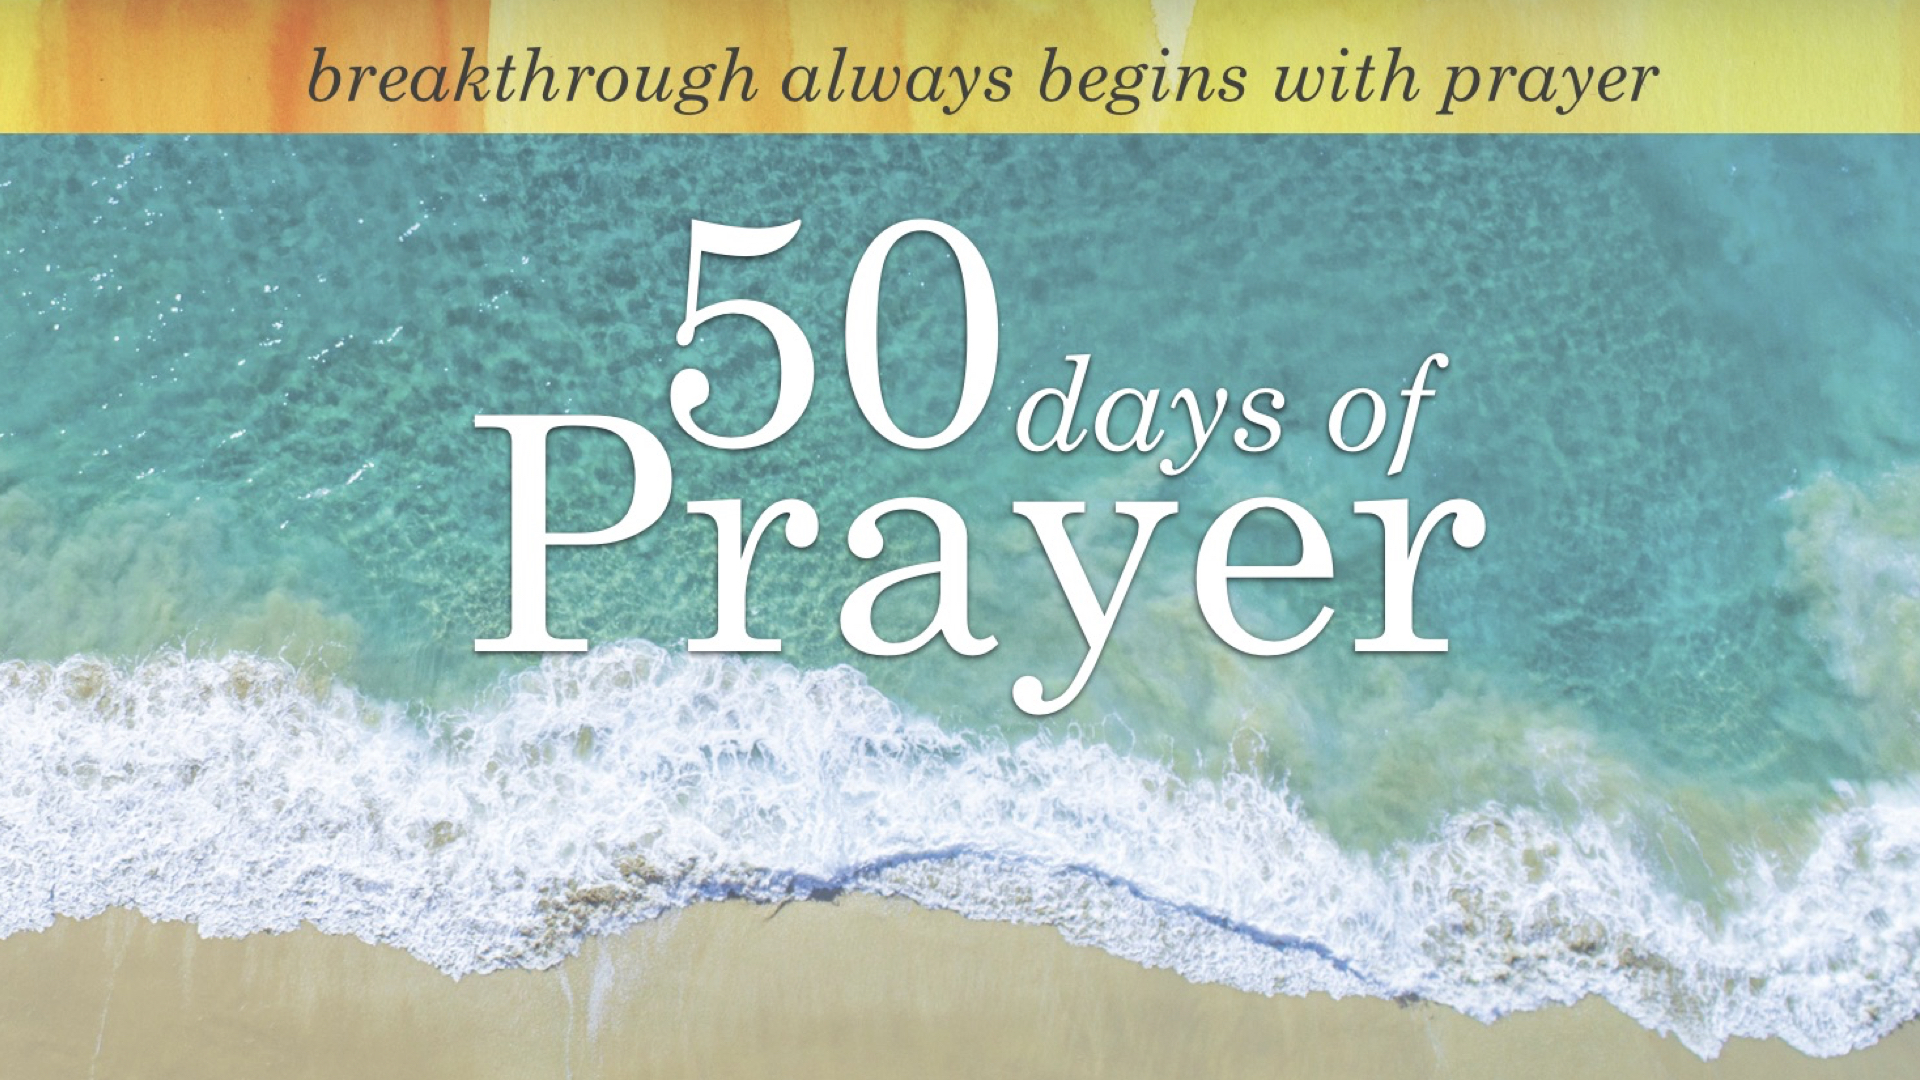 50 days of prayer 4: PRAYING IN 5 DIMENSIONS - PHIL CHORLIAN | 10.28.2018 | WATCH